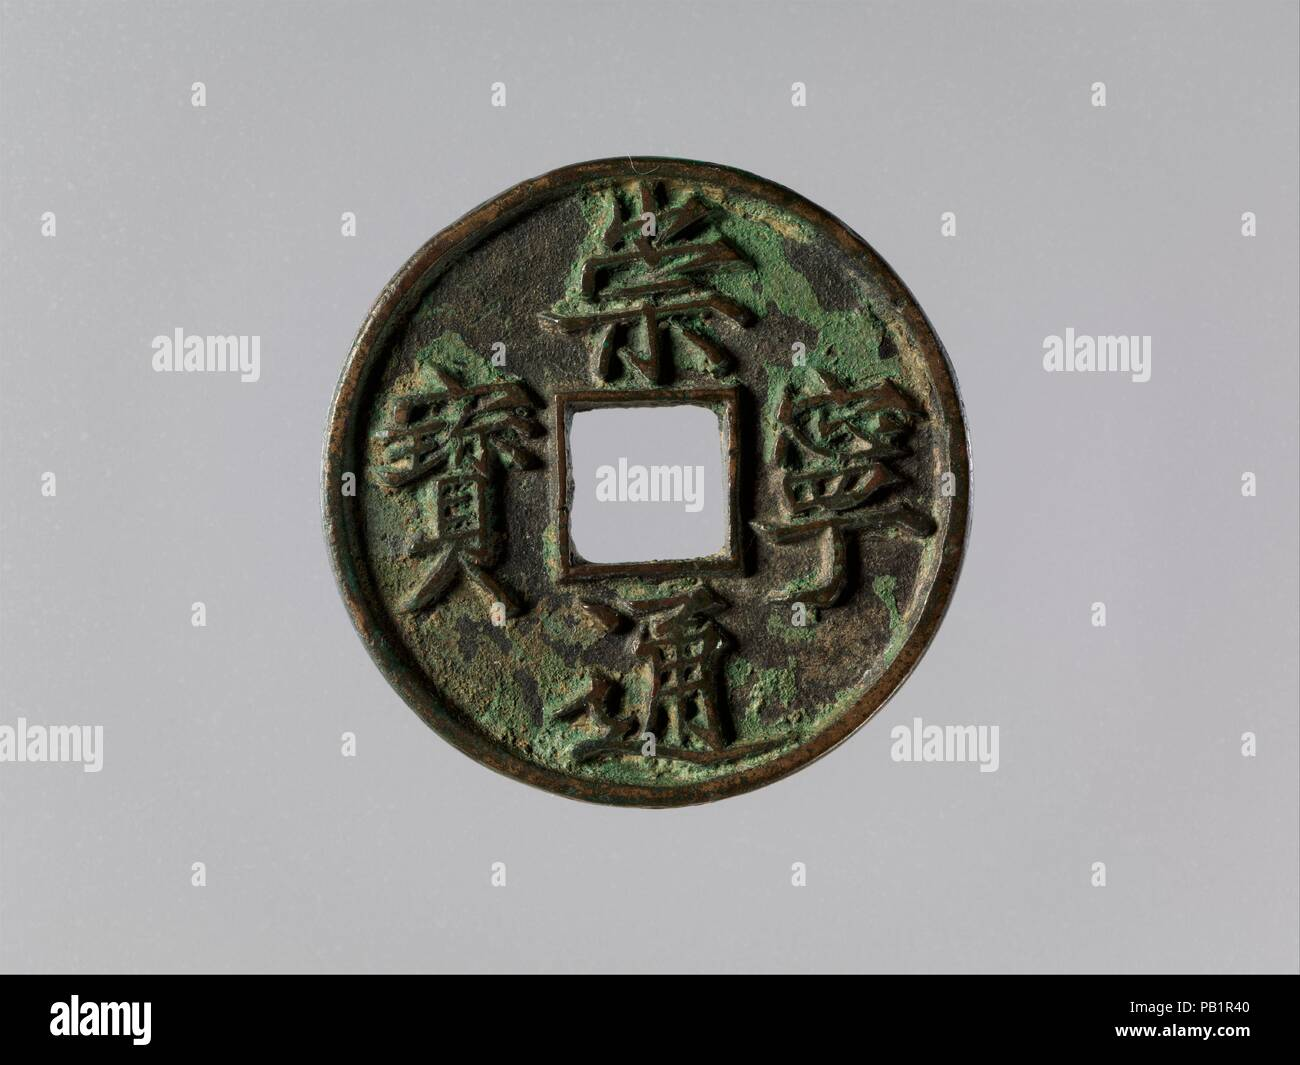 dating chinese coins with a circular hole cover